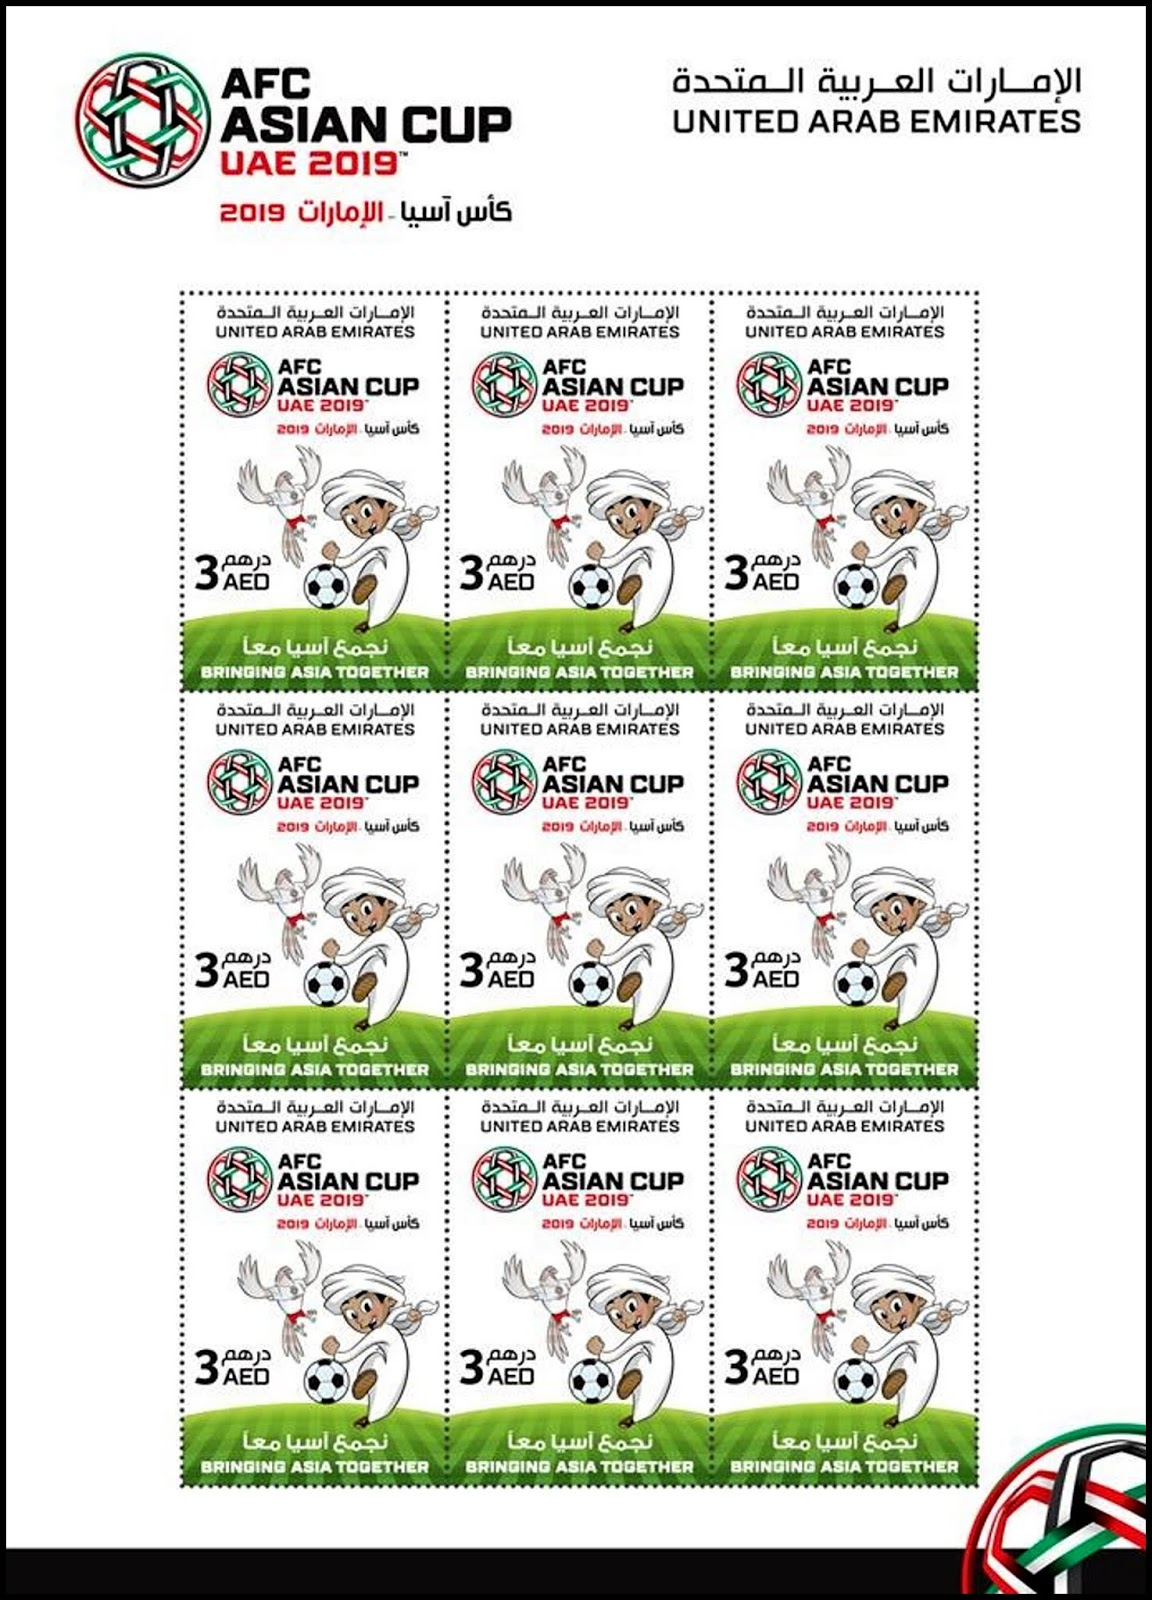 United Arab Emirates - AFC Asia Cup 2019 (January 5, 2019) sheet of 9